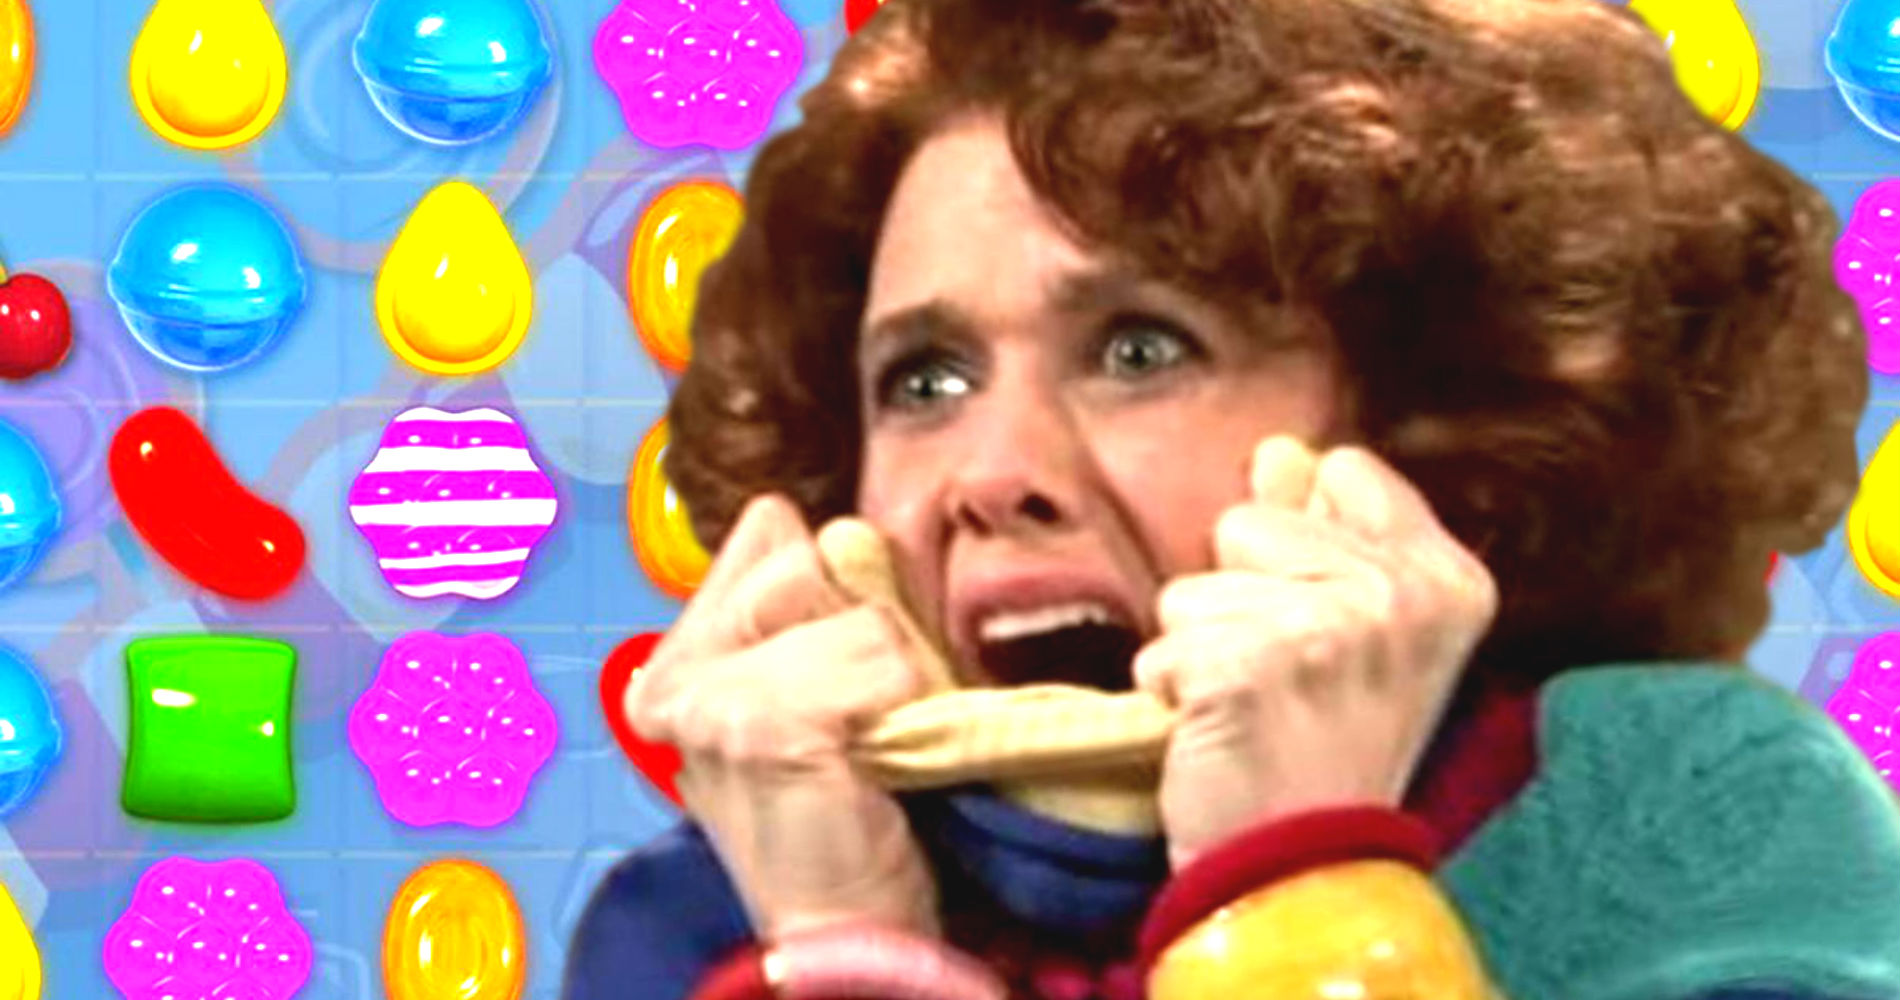 kristen wiig, candy crush, video game, game, phone, hs, snl